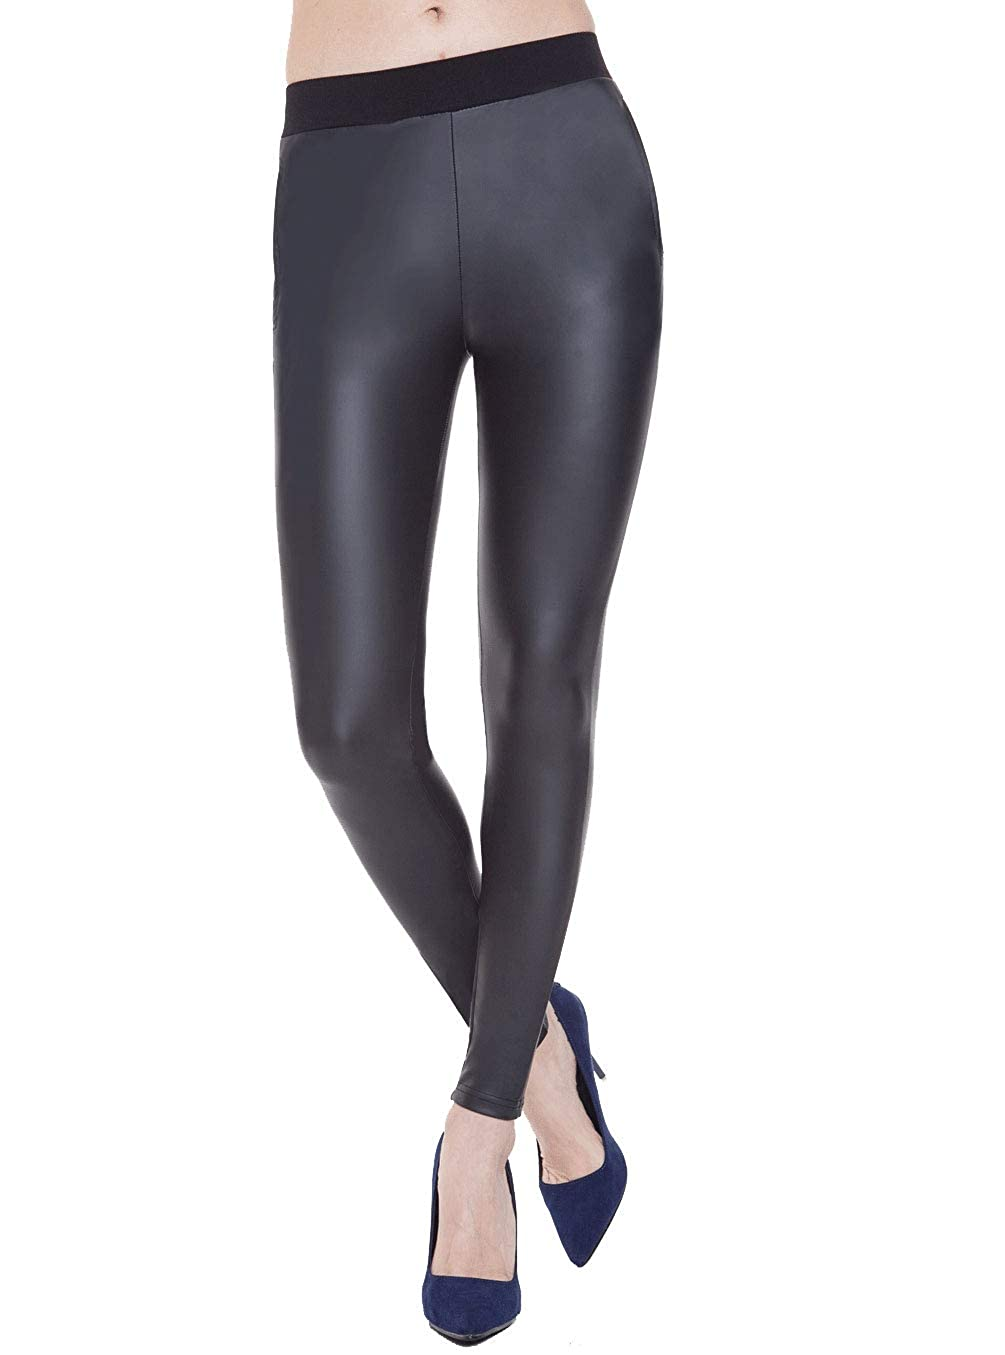 fd3fc8a6ca3268 Everbellus Stretchy Faux Leather Leggings for Women with Side Pockets Leather  Pants Black at Amazon Women's Clothing store: